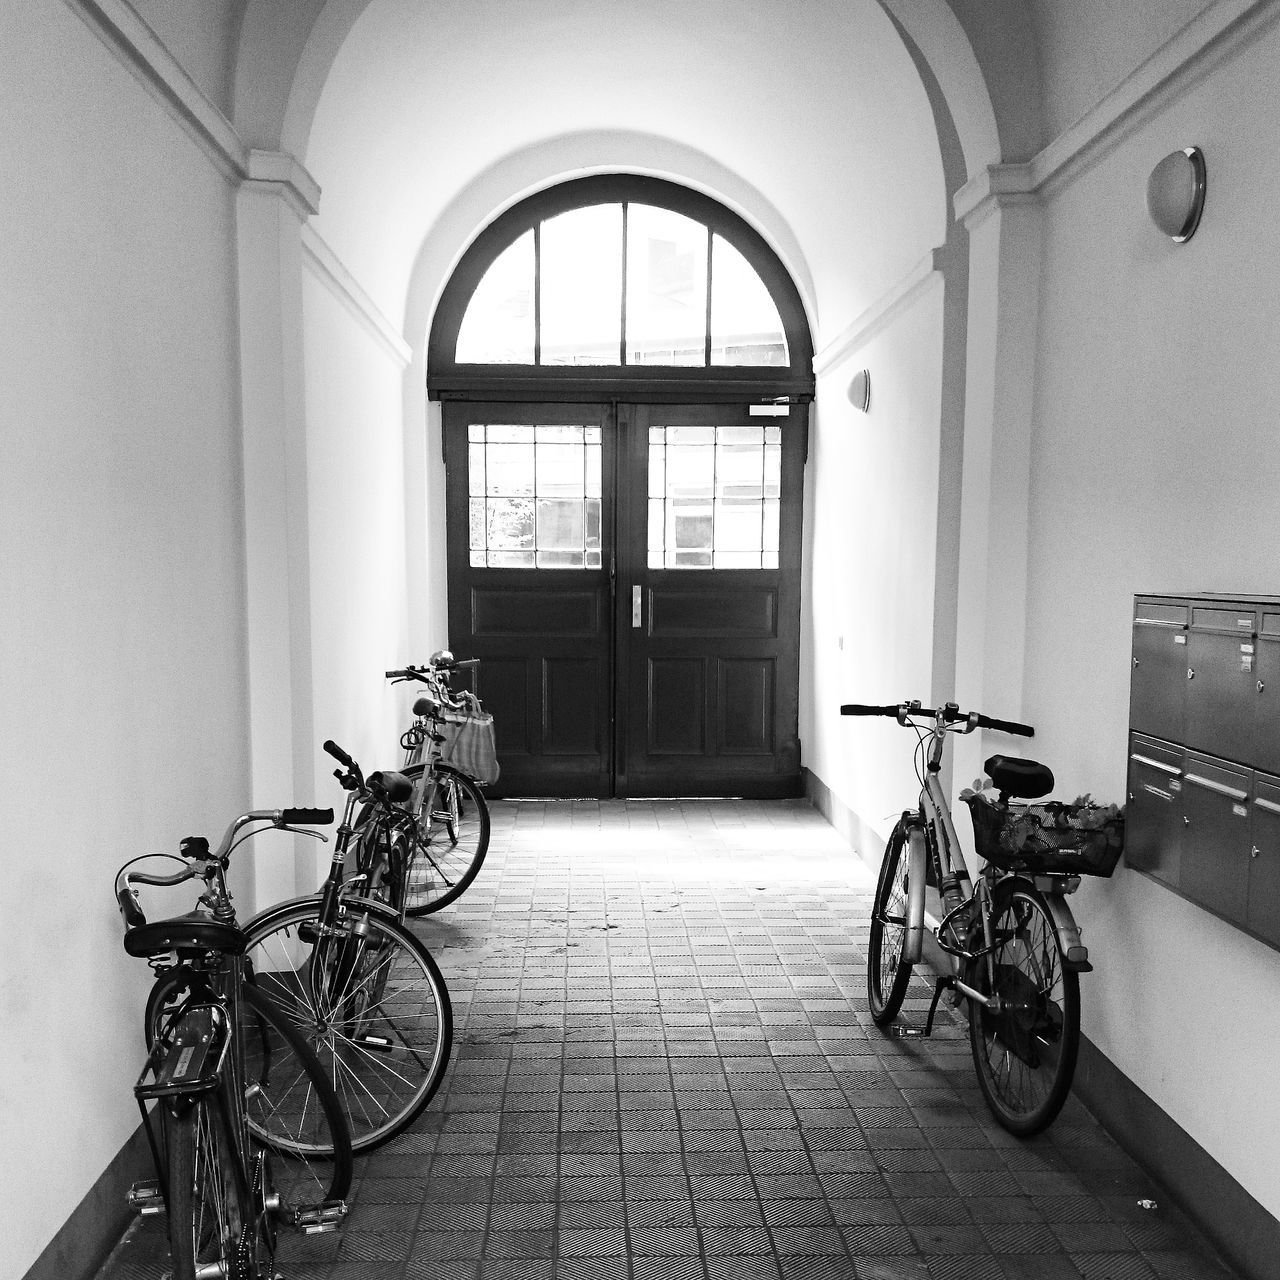 bicycle, transportation, mode of transport, window, land vehicle, built structure, day, stationary, architecture, indoors, no people, bicycle rack